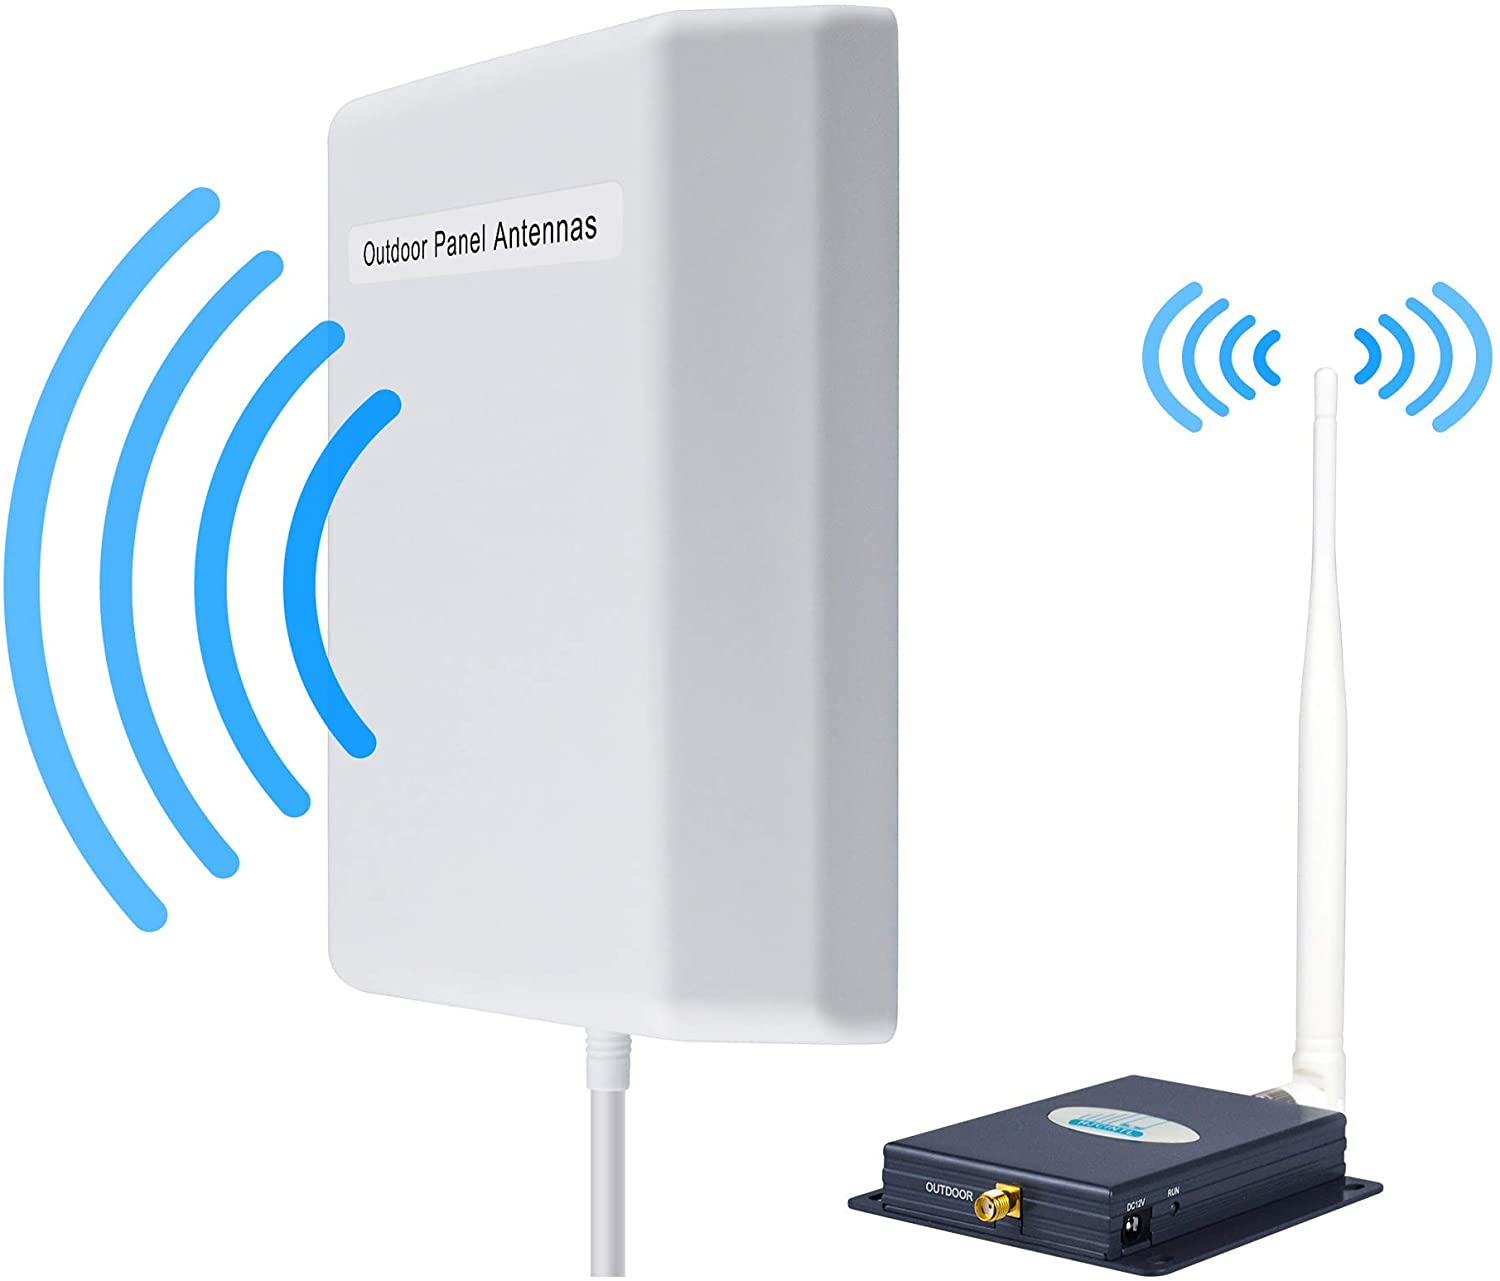 Signal Booster Verizon 4G LTE Cell Phone Signal Booster Indoor 65dB Verizon Cell Phone Booster FDD 700Mhz HJCINTL Band13 High Gain Mobile Phone Signal Booster Repeater for Home